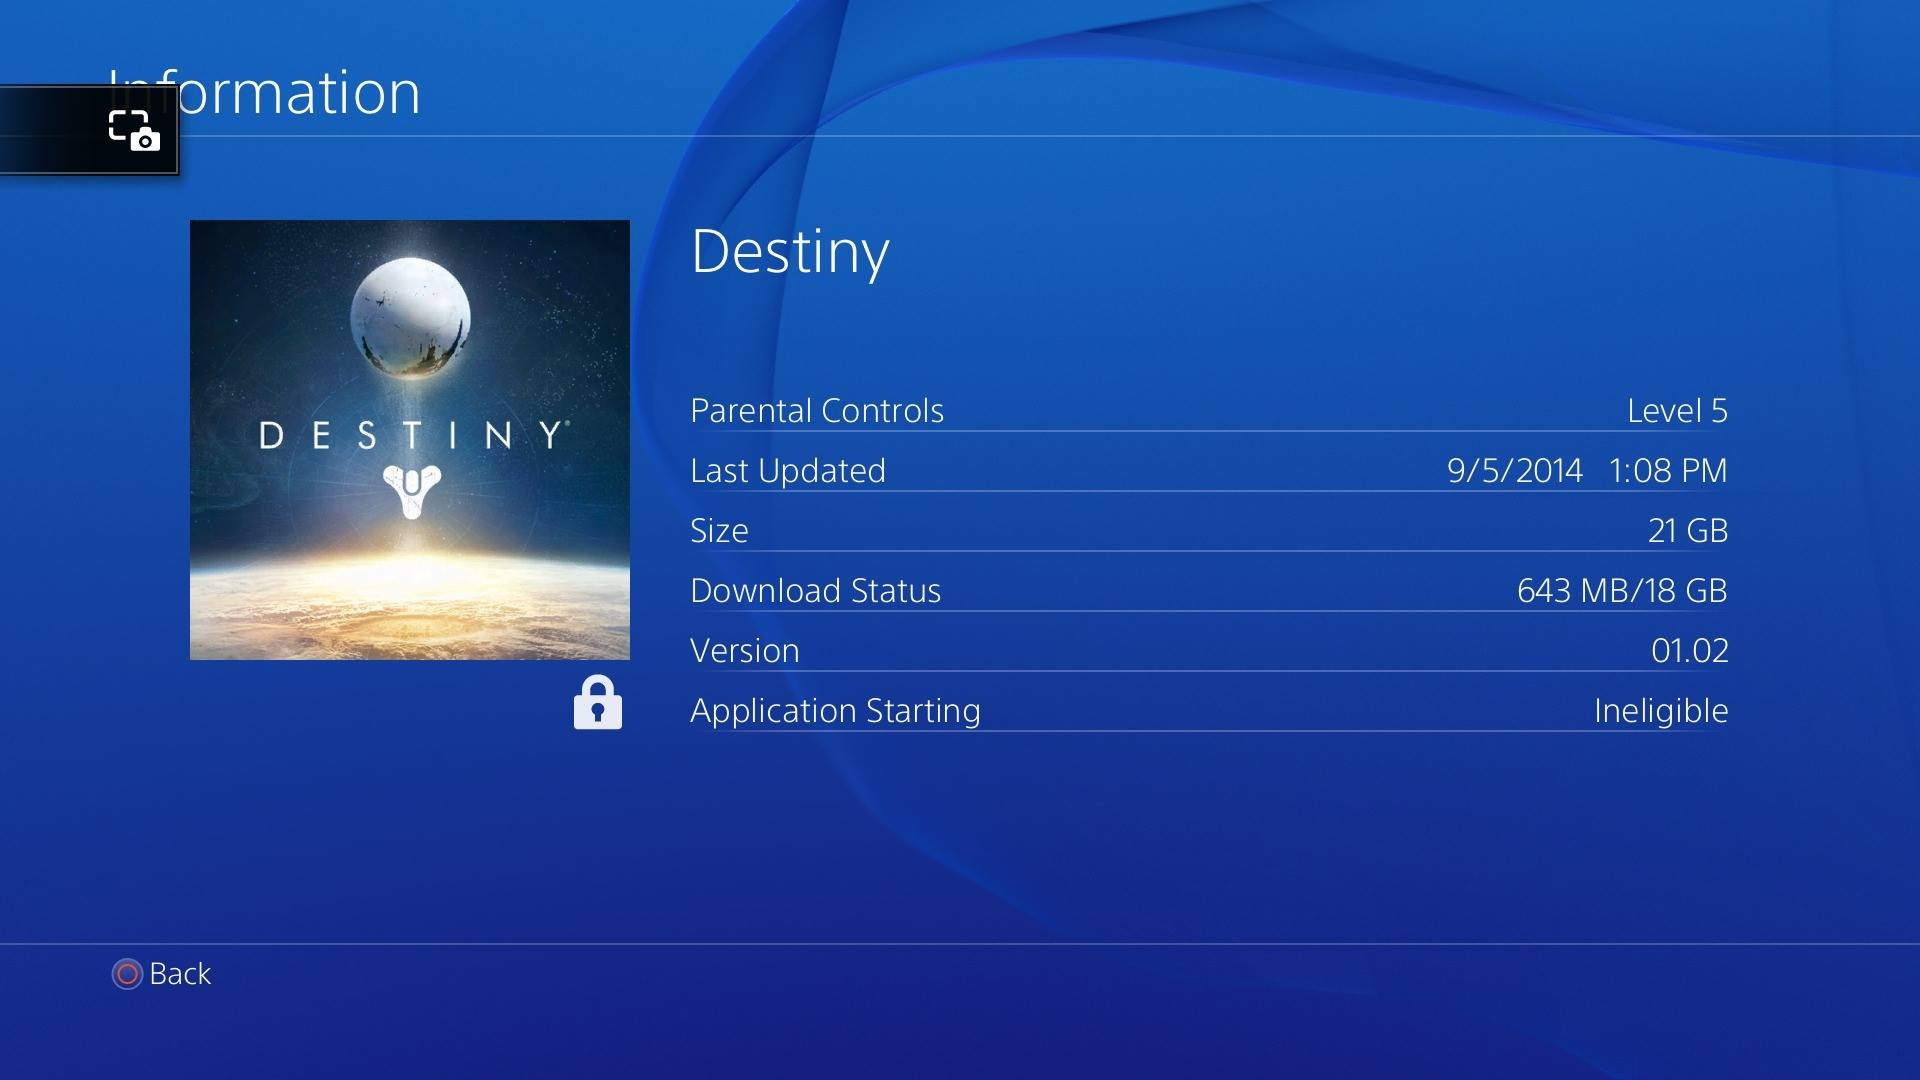 Destiny Available For Pre-load on Playstation 4, Size 21 GB Only